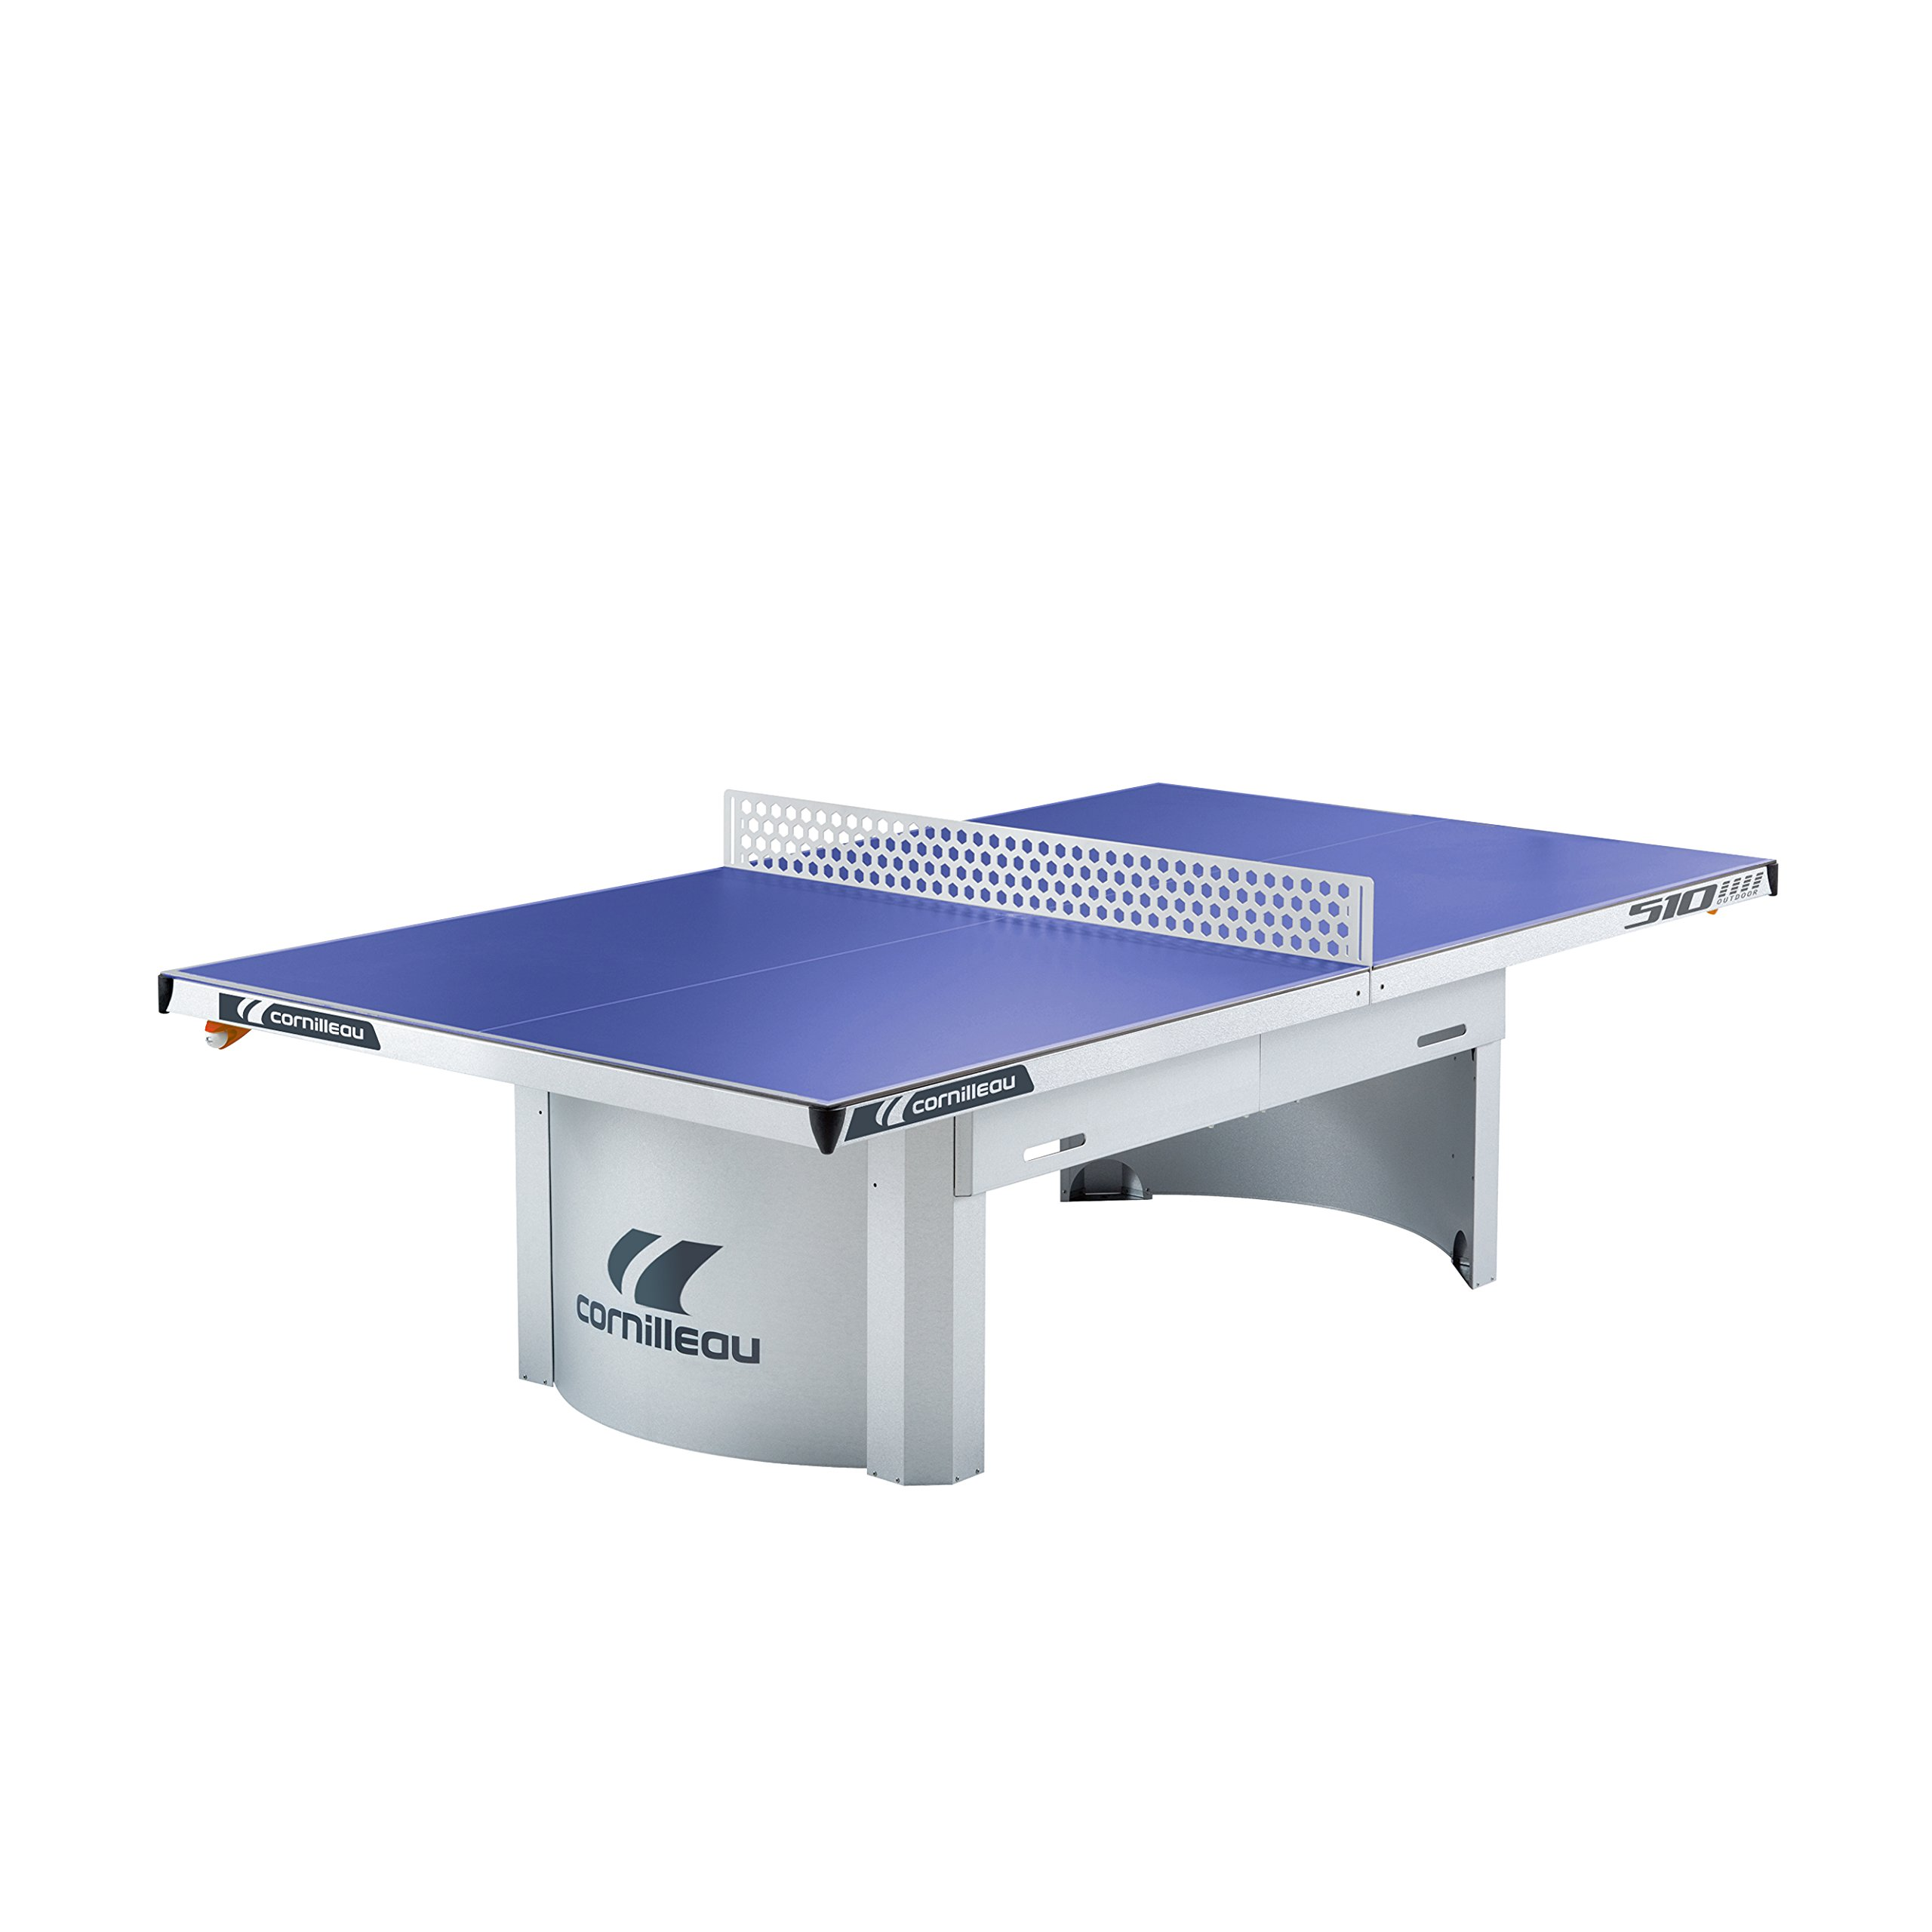 Cornilleau 510M Outdoor Stationary Blue Table Tennis Table …